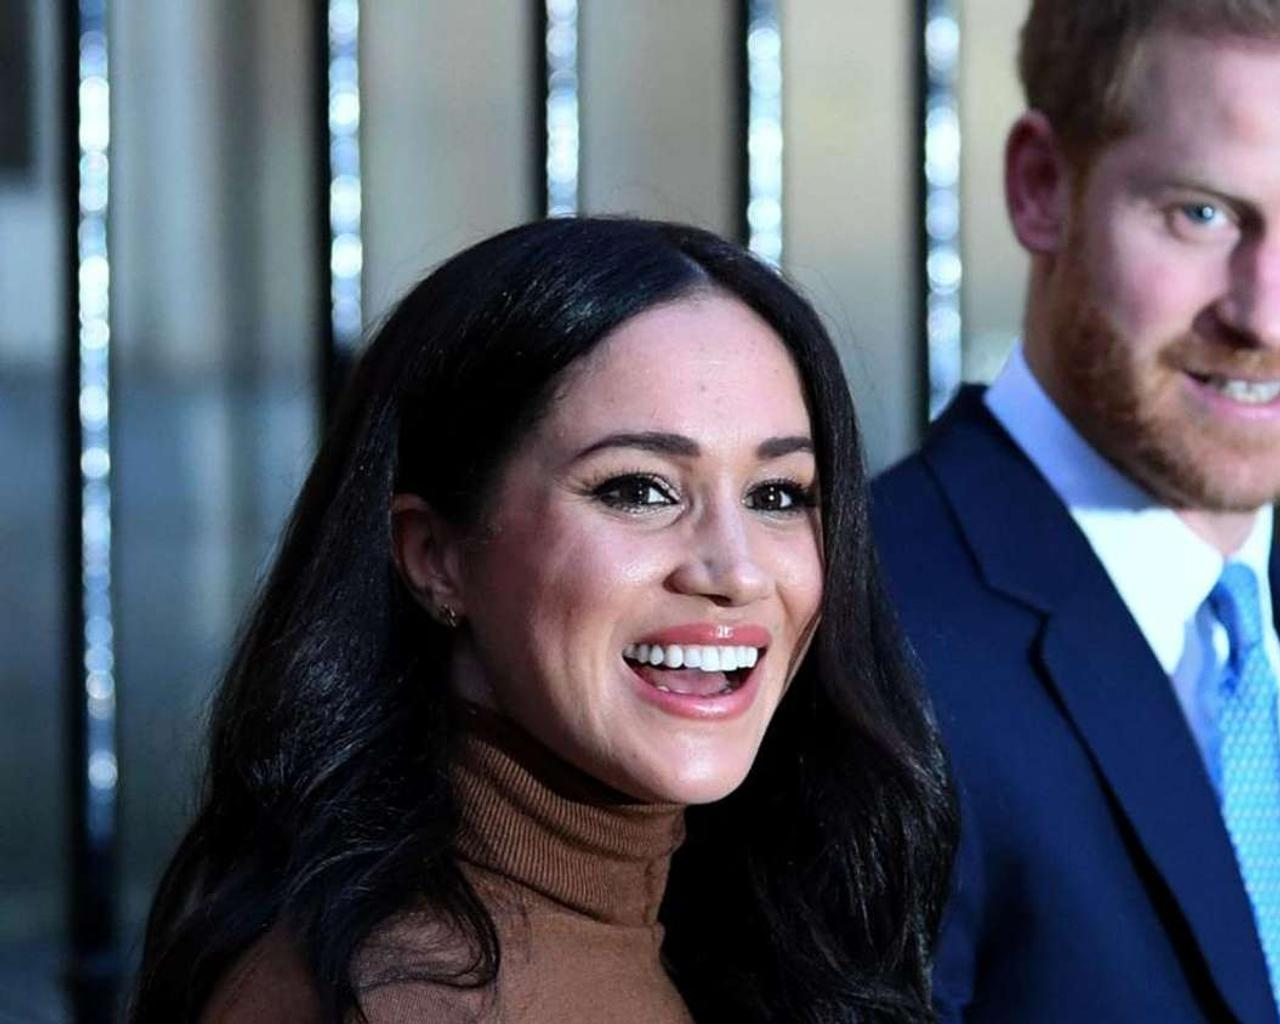 Archewell Productions, founded by Meghan Markle and Prince Harry, has announced the launch of its first Netflix season.